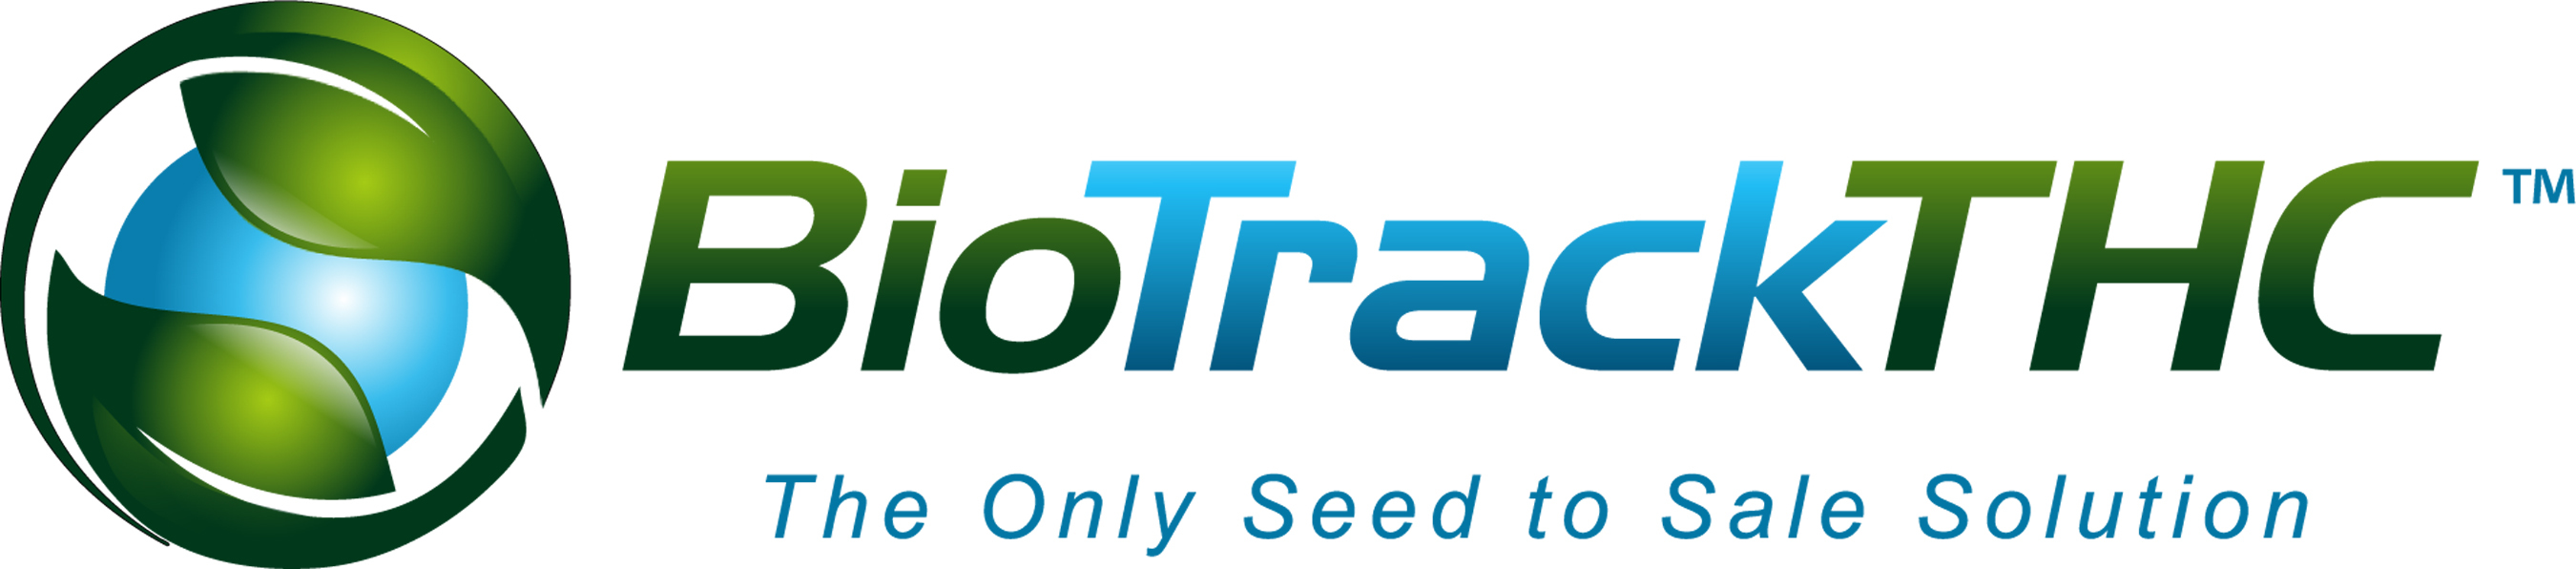 BioTrackTHC is an extensively used seed-to-sale cannabis tracking solution deployed by businesses and ...